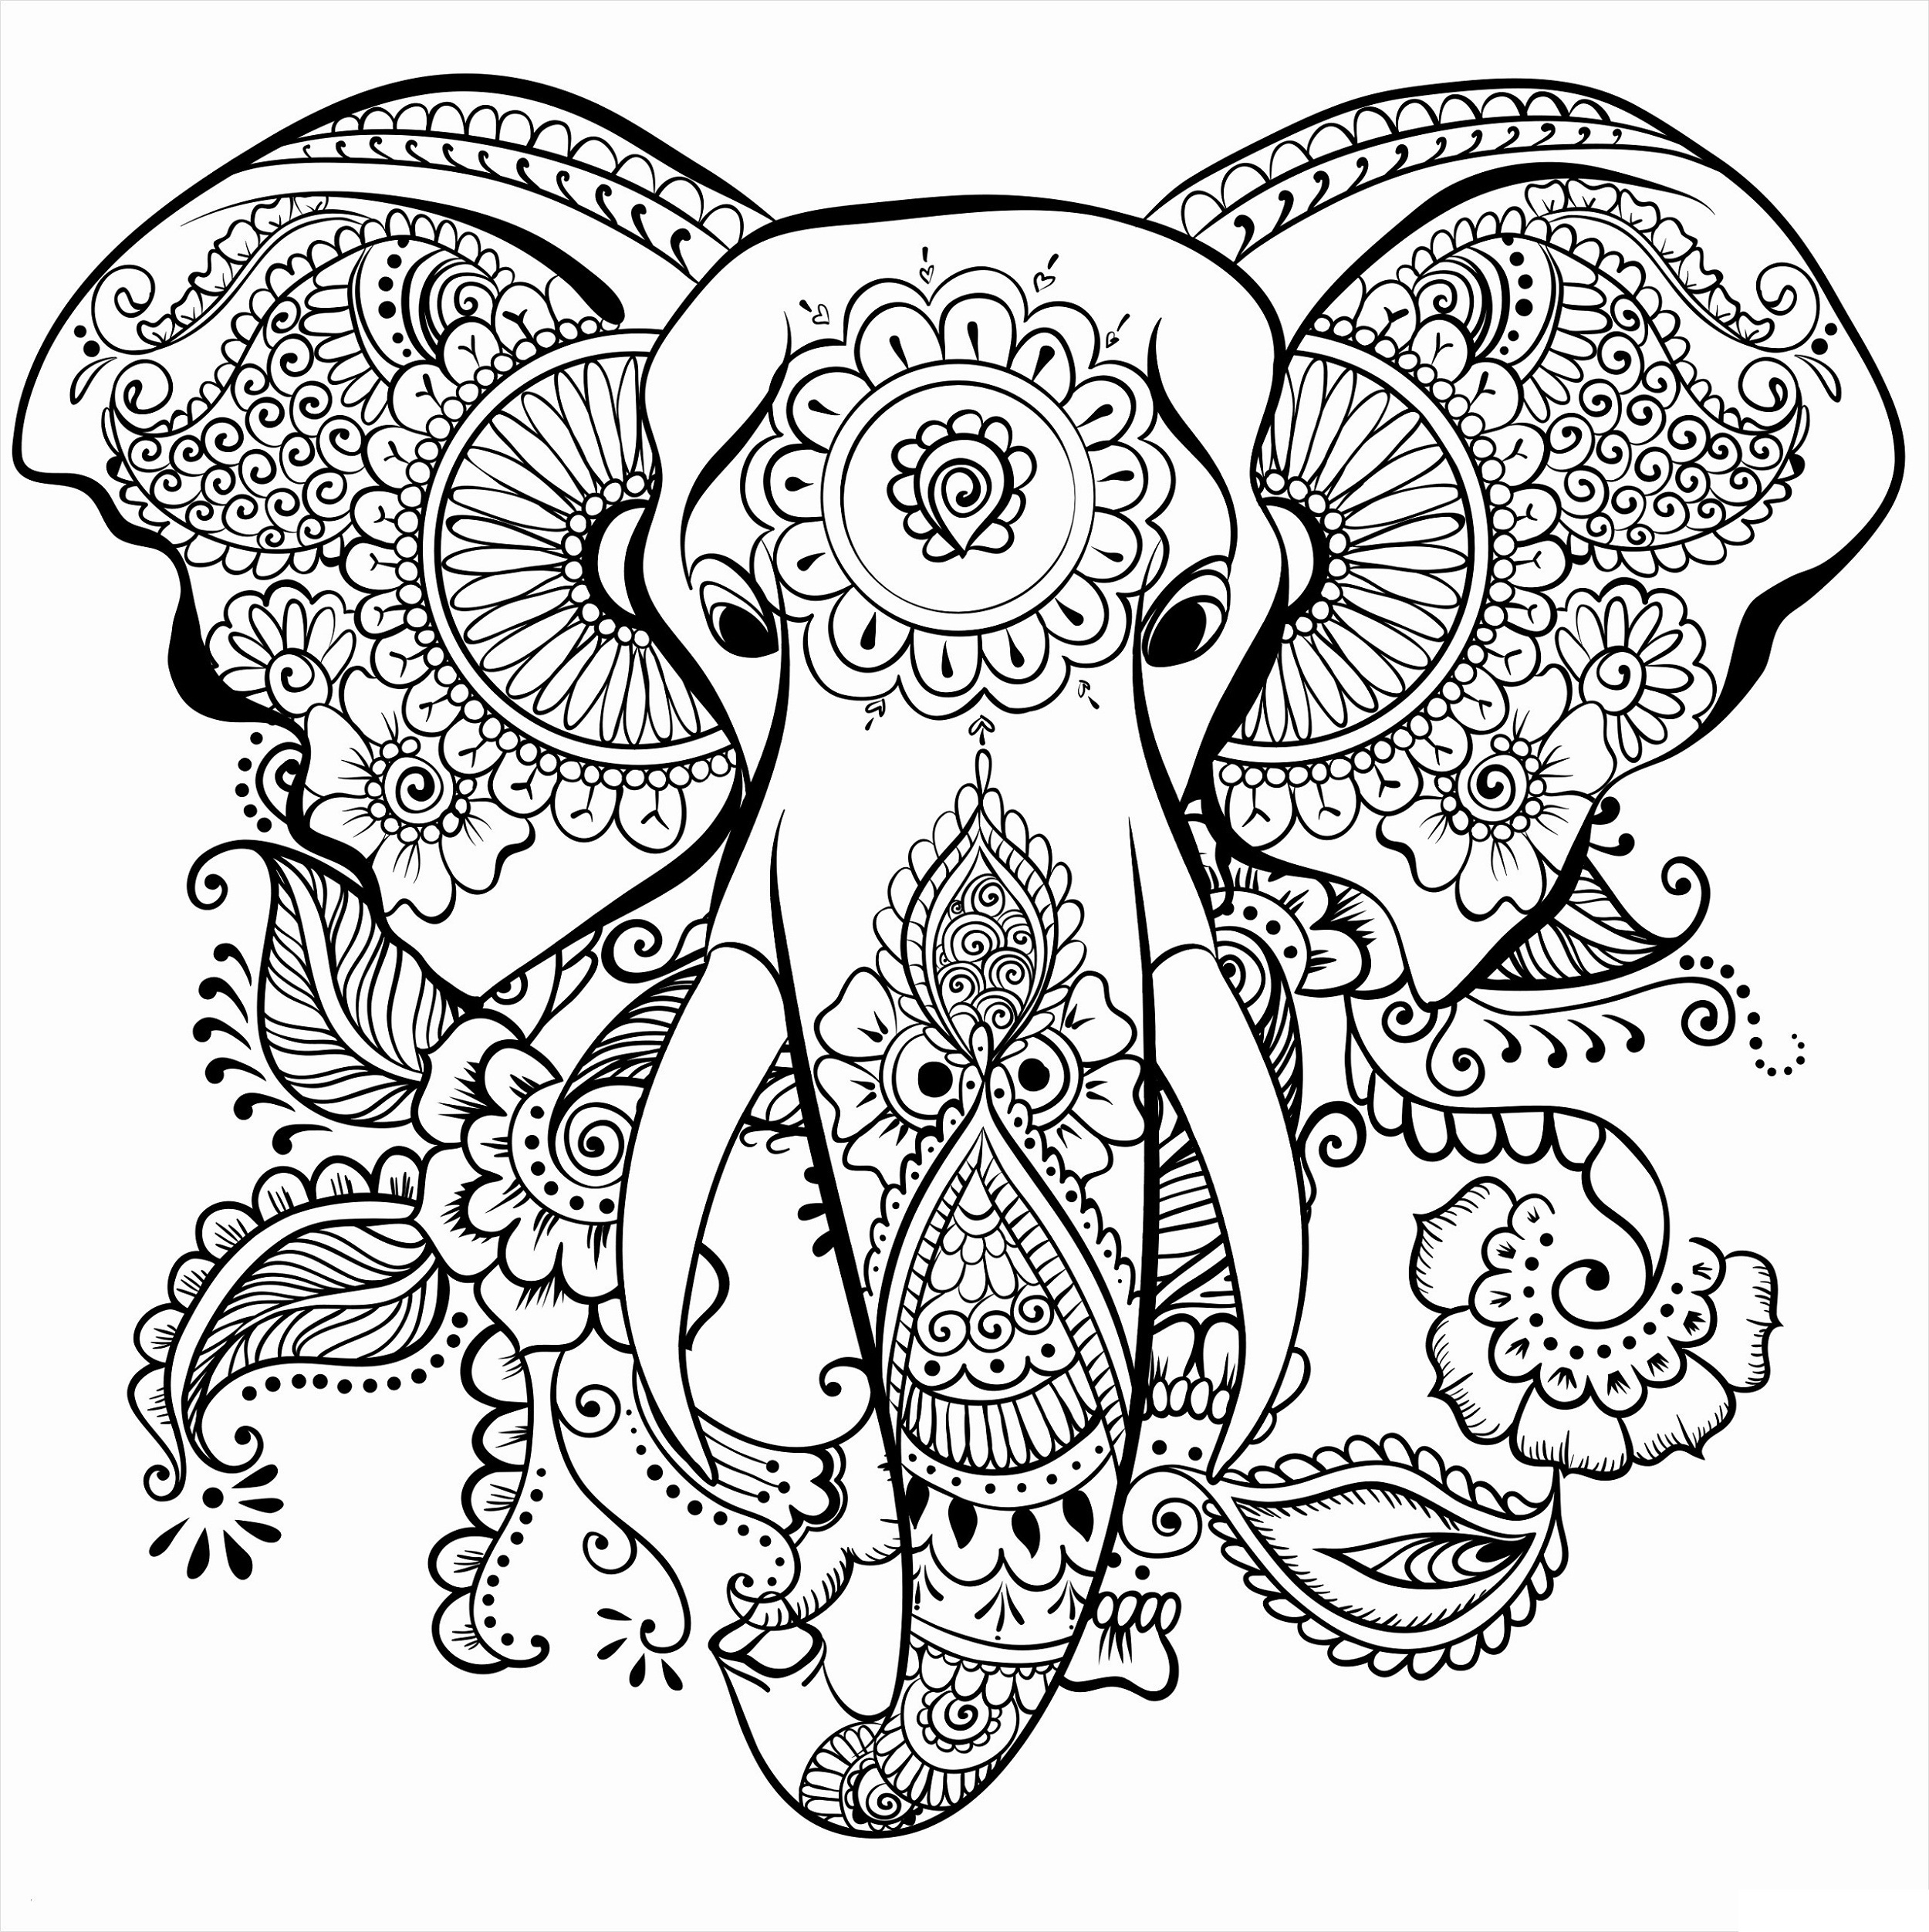 coloring adults printable free printable coloring pages for adults advanced coloring printable adults